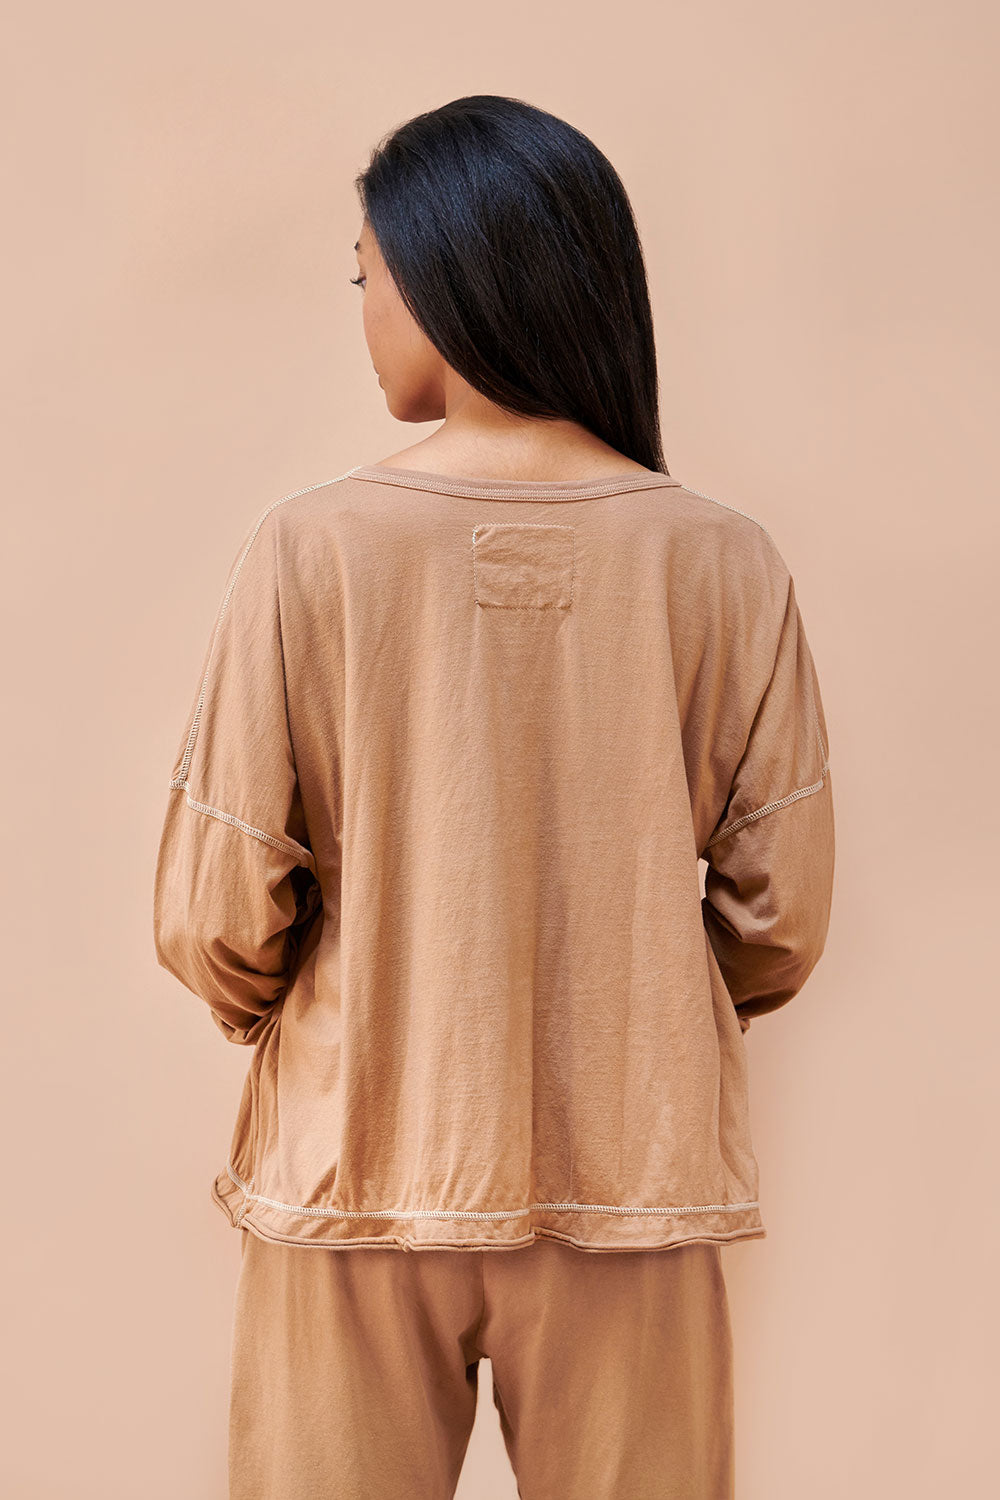 Alabama Chanin The Coverup Oversized Womens Long Sleeve Top in Organic Camel Cotton